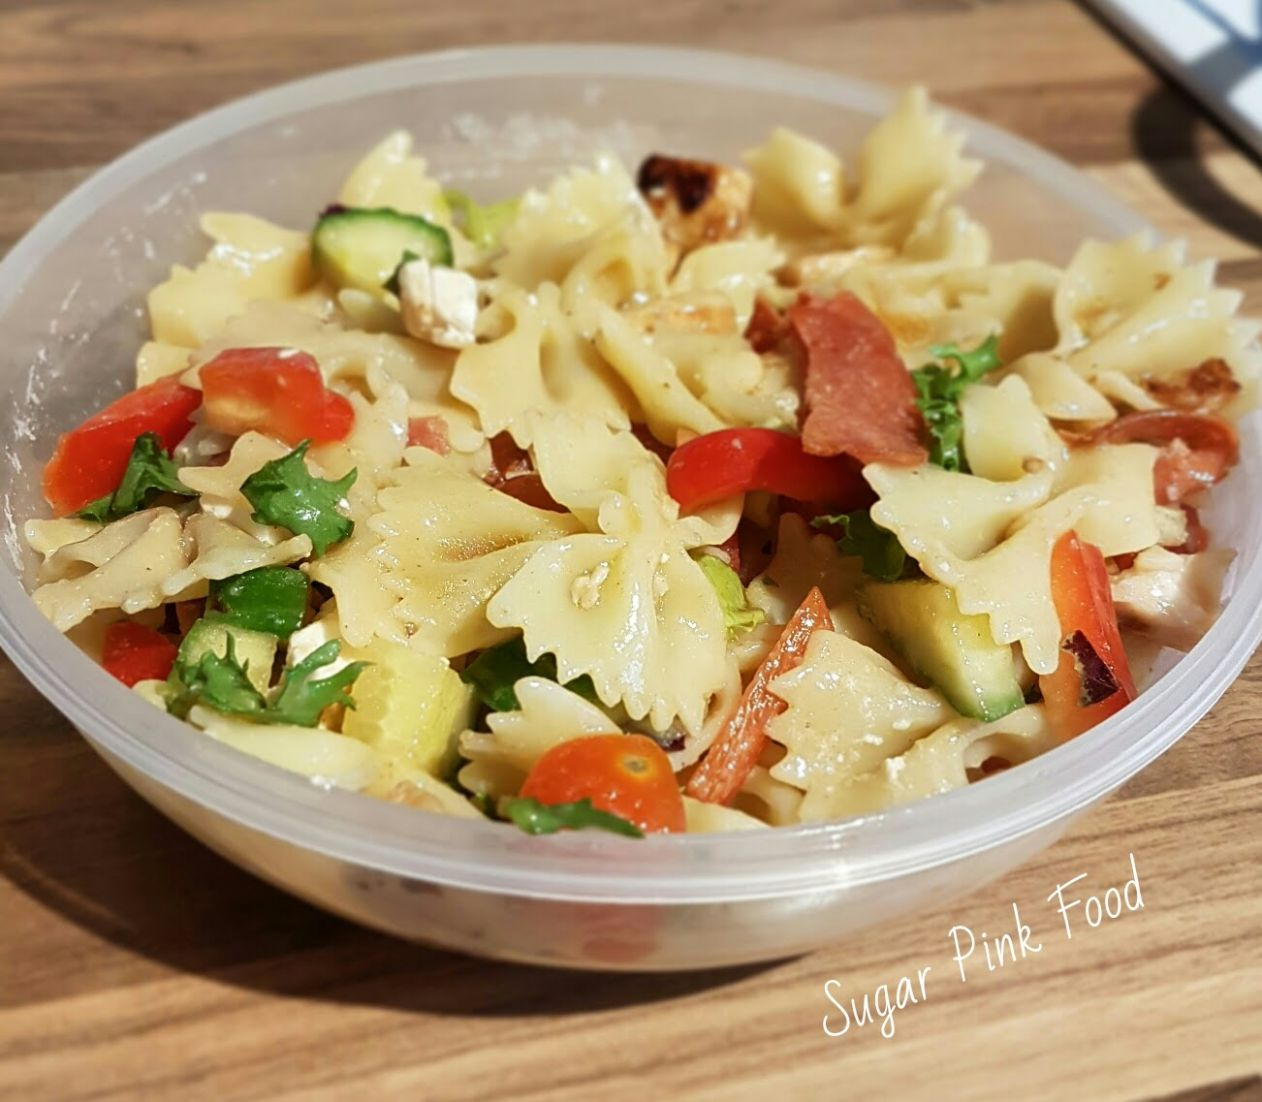 Italian Chicken Pasta Salad | Slimming World - Sugar Pink Food - Salad Recipes Slimming World